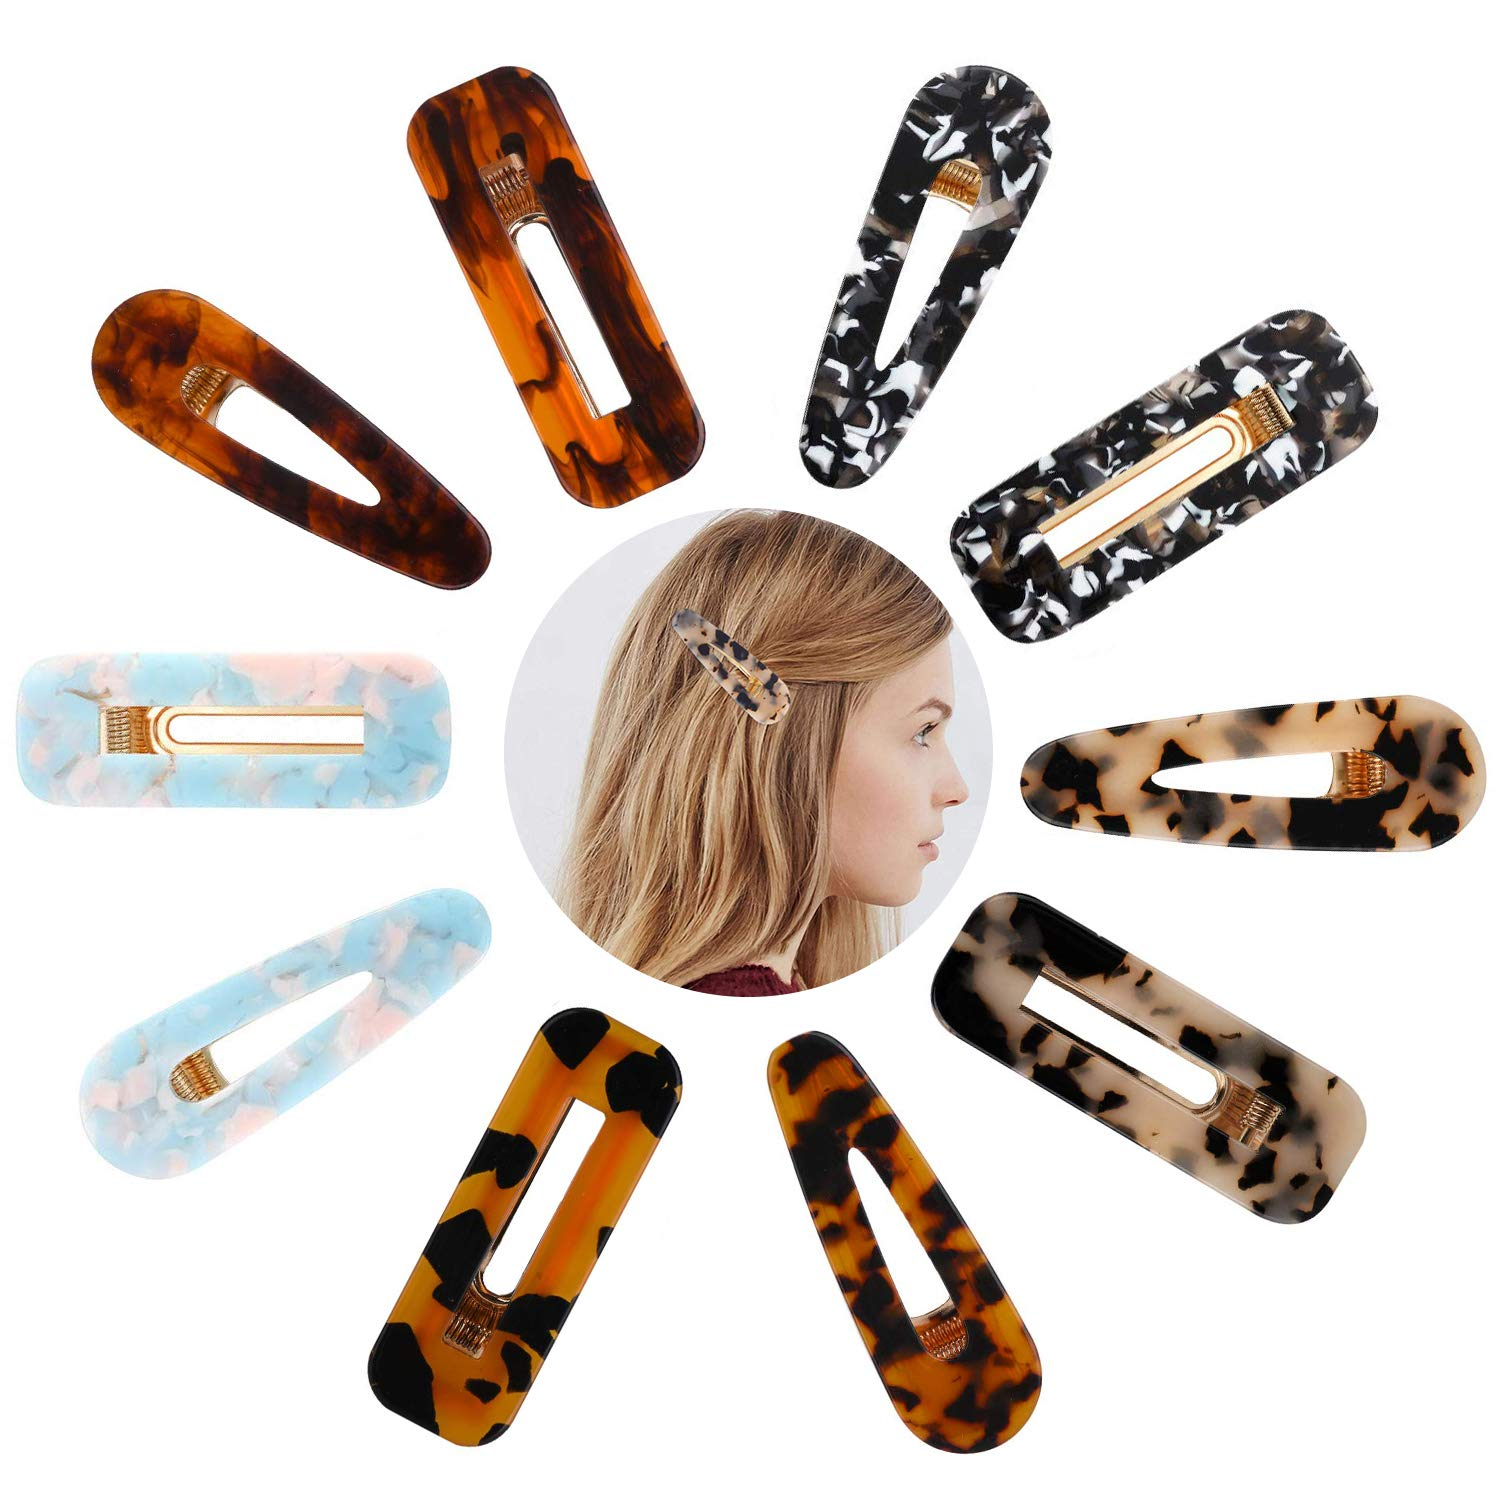 Acrylic Resin Alligator Marble and Tortoise Hair Barrettes for Women and Girls, 10 pcs